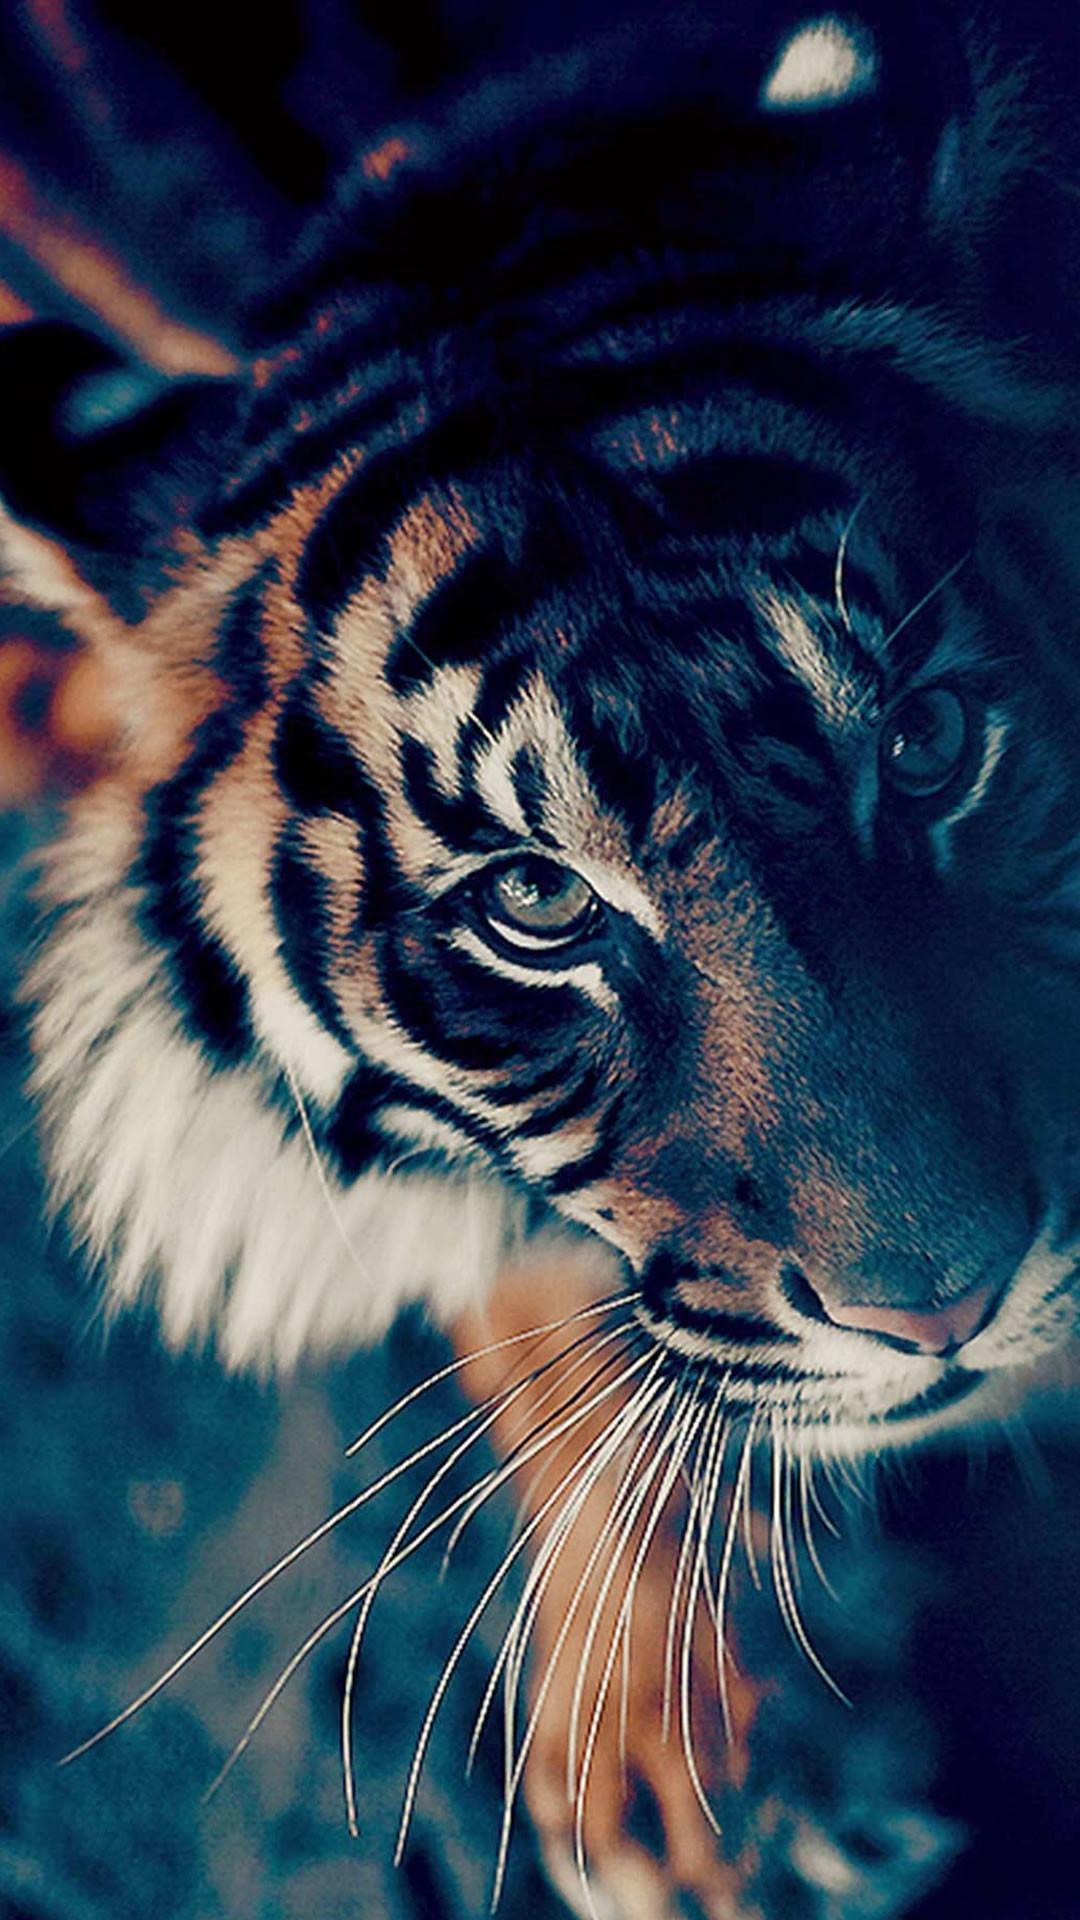 Best 25+ Tiger wallpaper ideas on Pinterest | Tiger pictures, Tigers in the  wild and Tigers